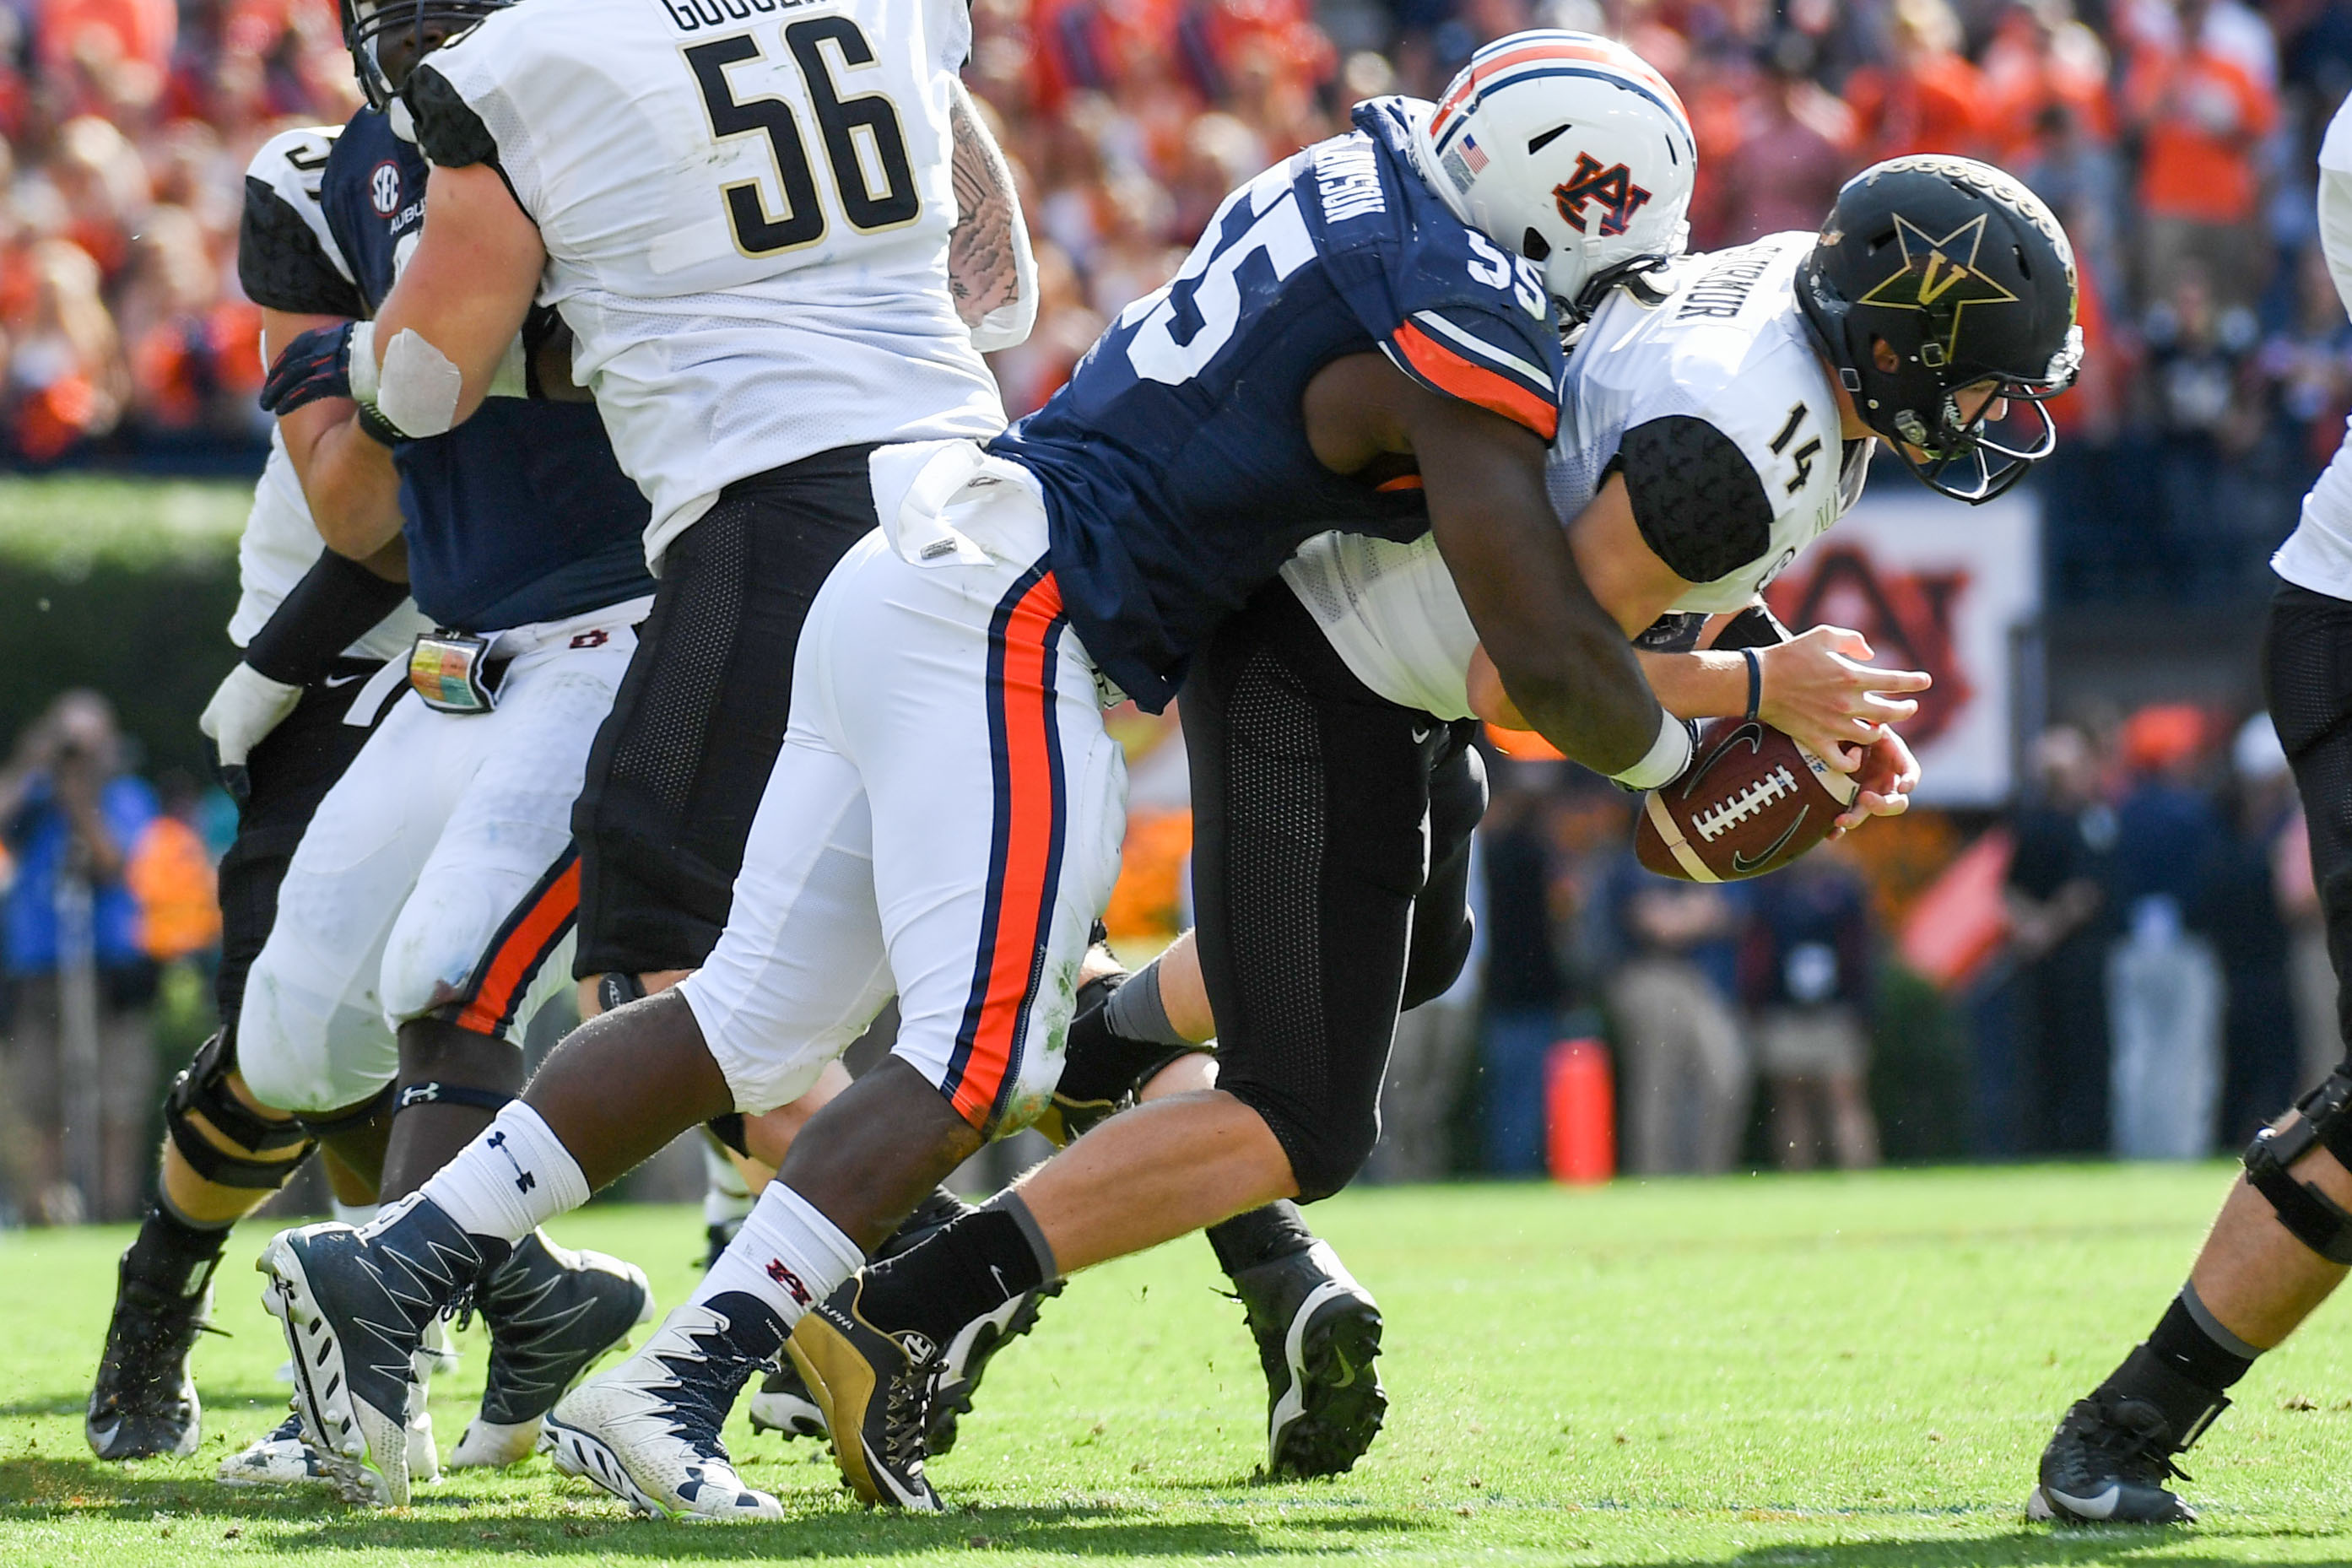 Nov 5, 2016; Auburn, AL, USA; Auburn Tigers defensive lineman Carl Lawson (55) sacks Vanderbilt Commodores quarterback Kyle Shurmur (14) during the fourth quarter at Jordan Hare Stadium. Auburn won 23-16. Mandatory Credit: Shanna Lockwood-USA TODAY Sports